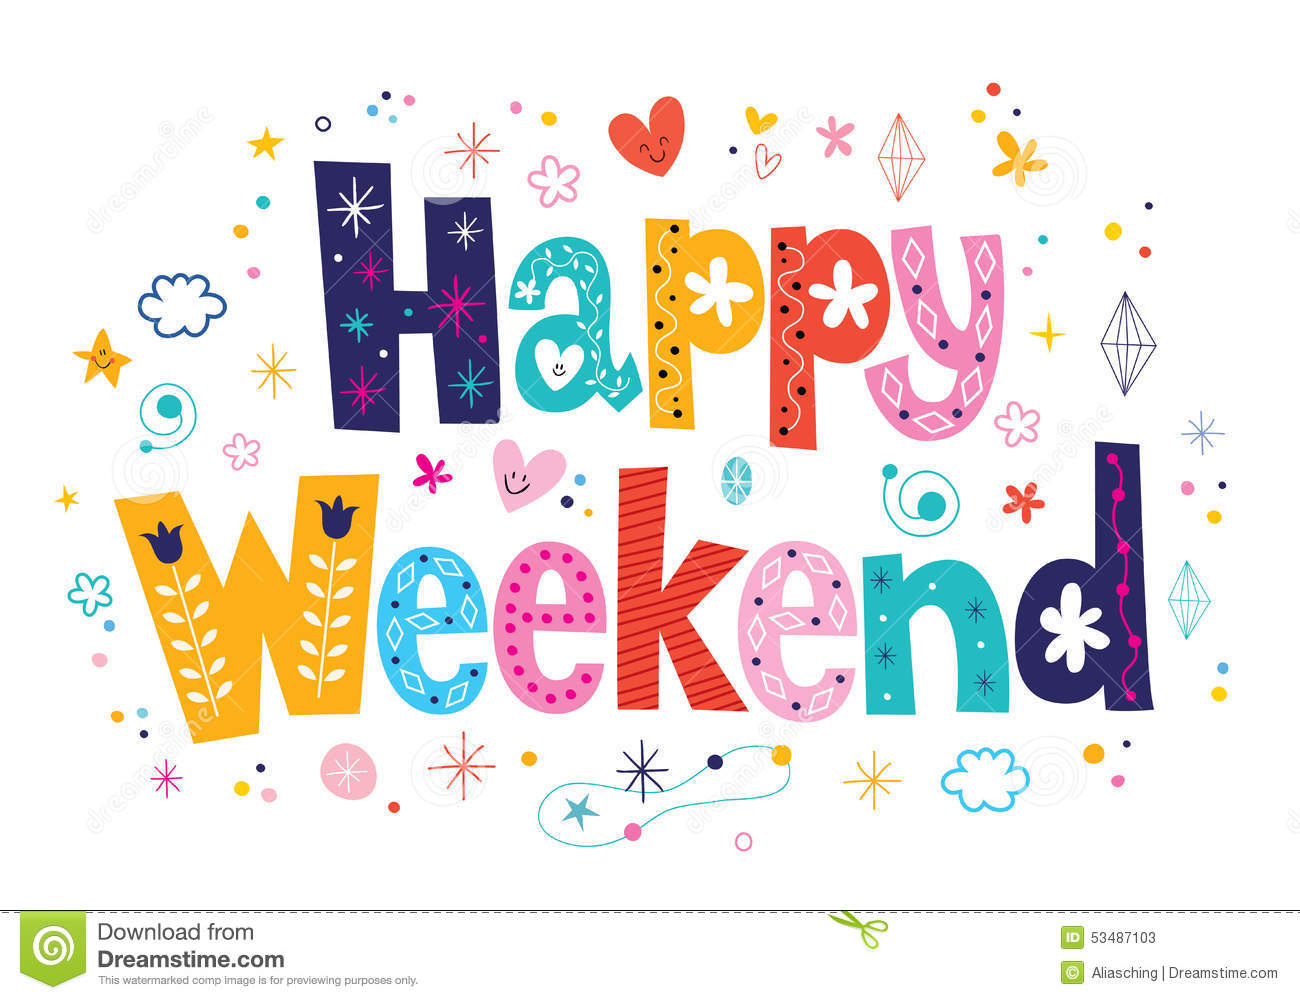 weekend stock illustrations 29 259 weekend stock illustrations rh dreamstime com free have a good weekend clipart have a great weekend clipart free